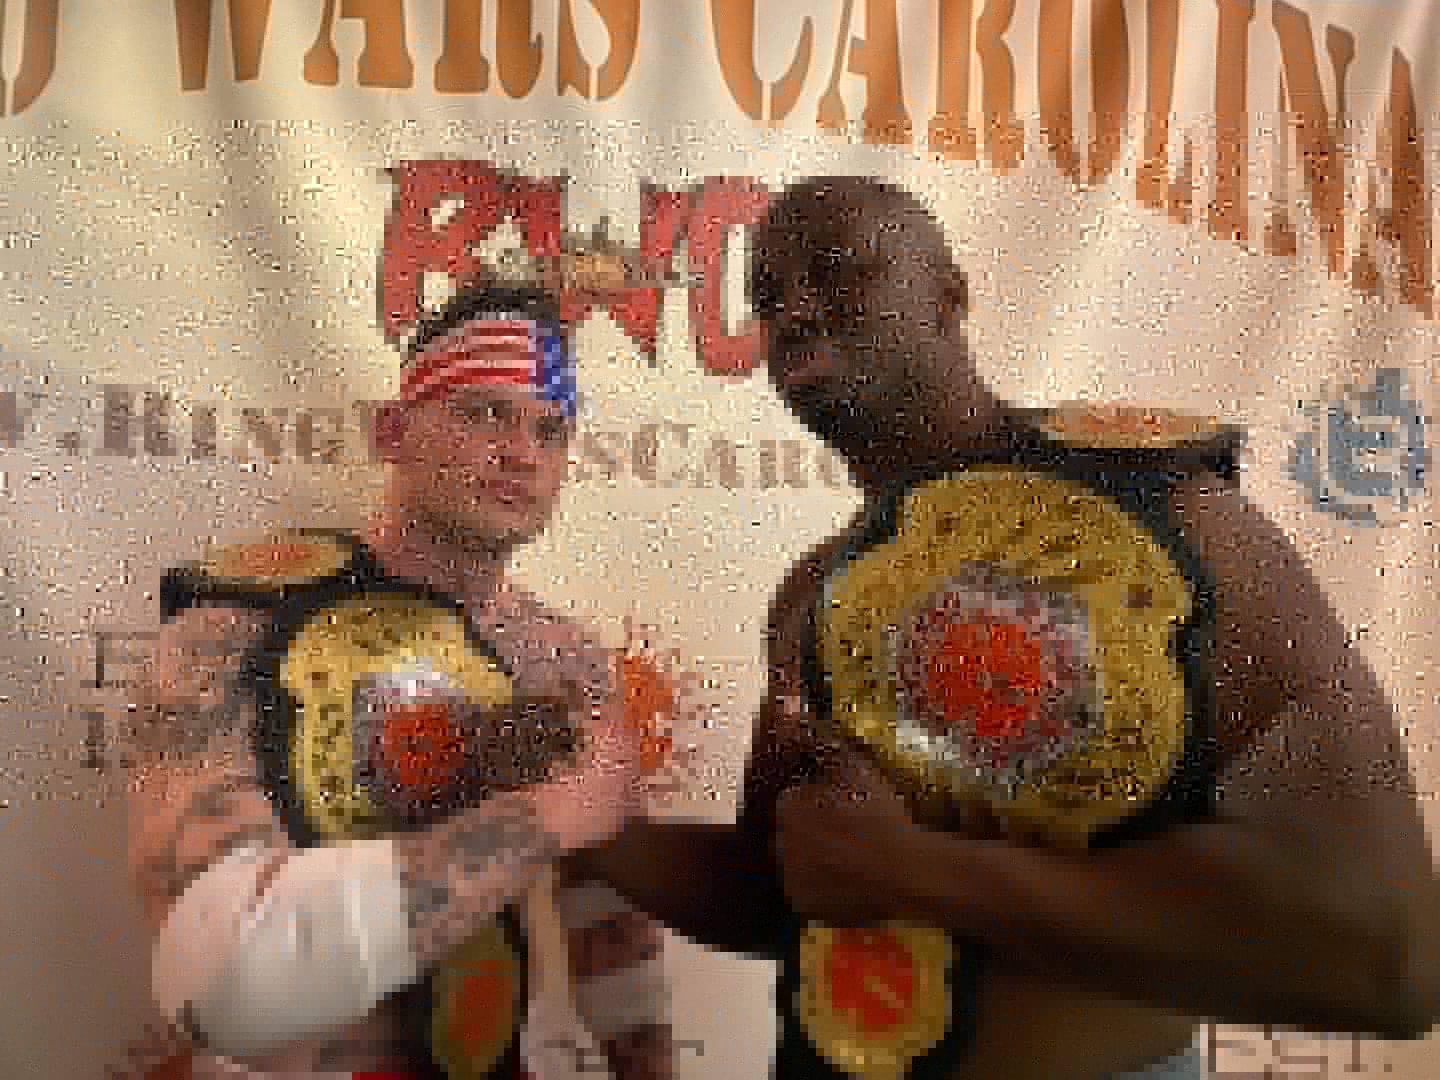 Radio Personality Turned Professional Wrestler Wins Ring Wars Carolina (RWC) Tag Team Championship